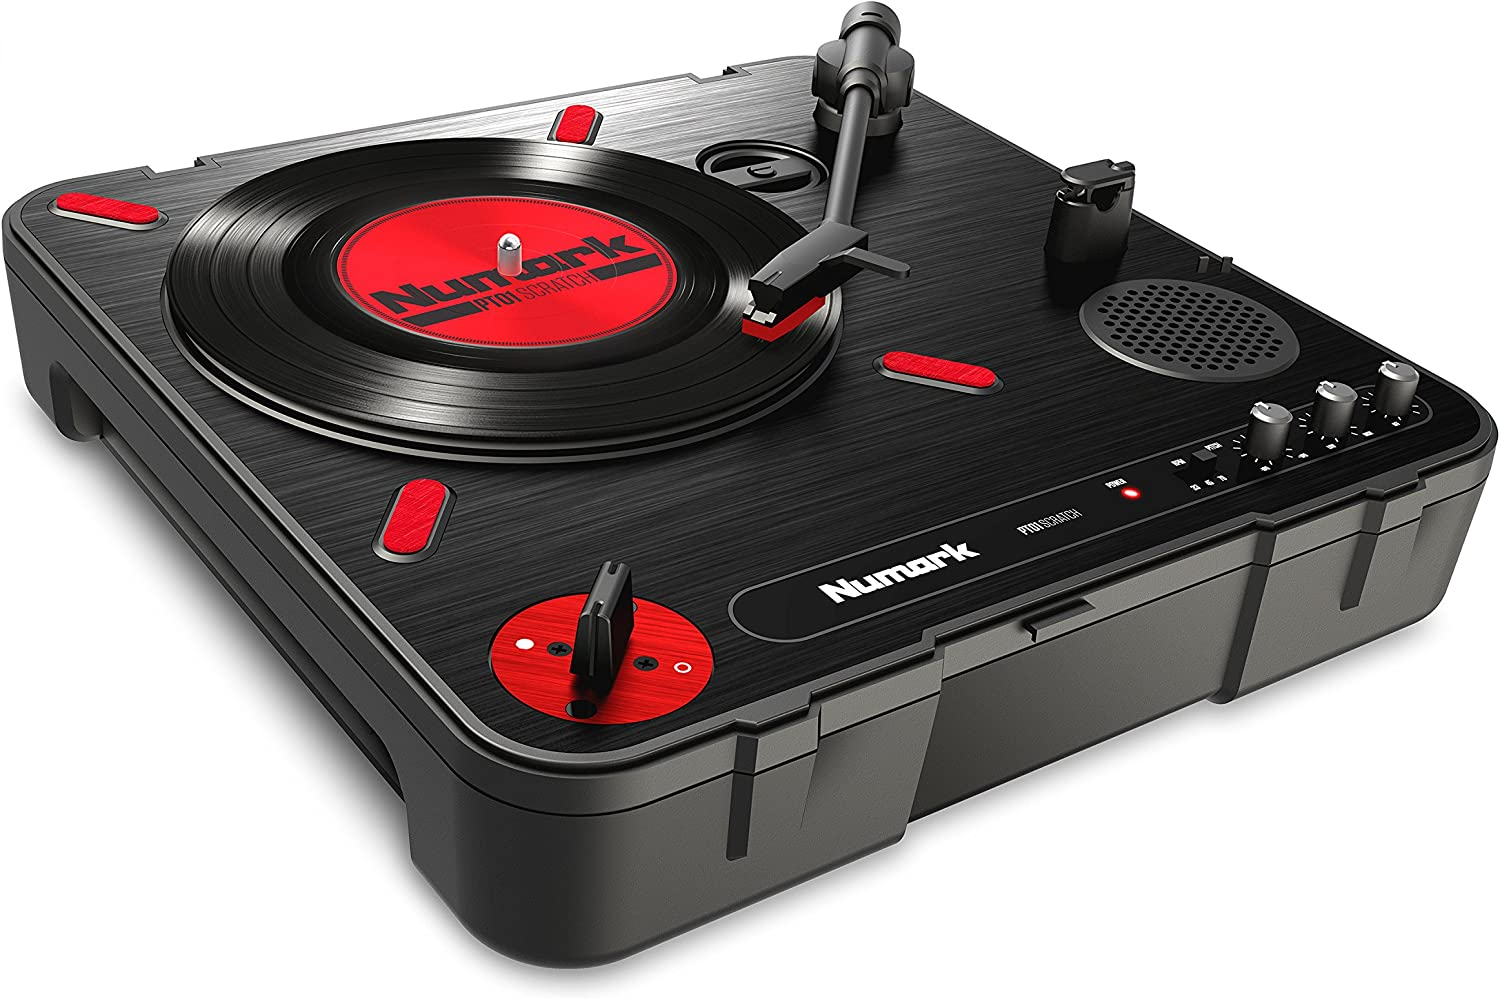 Long-awaited Numark PT01 Scratch Portable Quantity limited Turntable